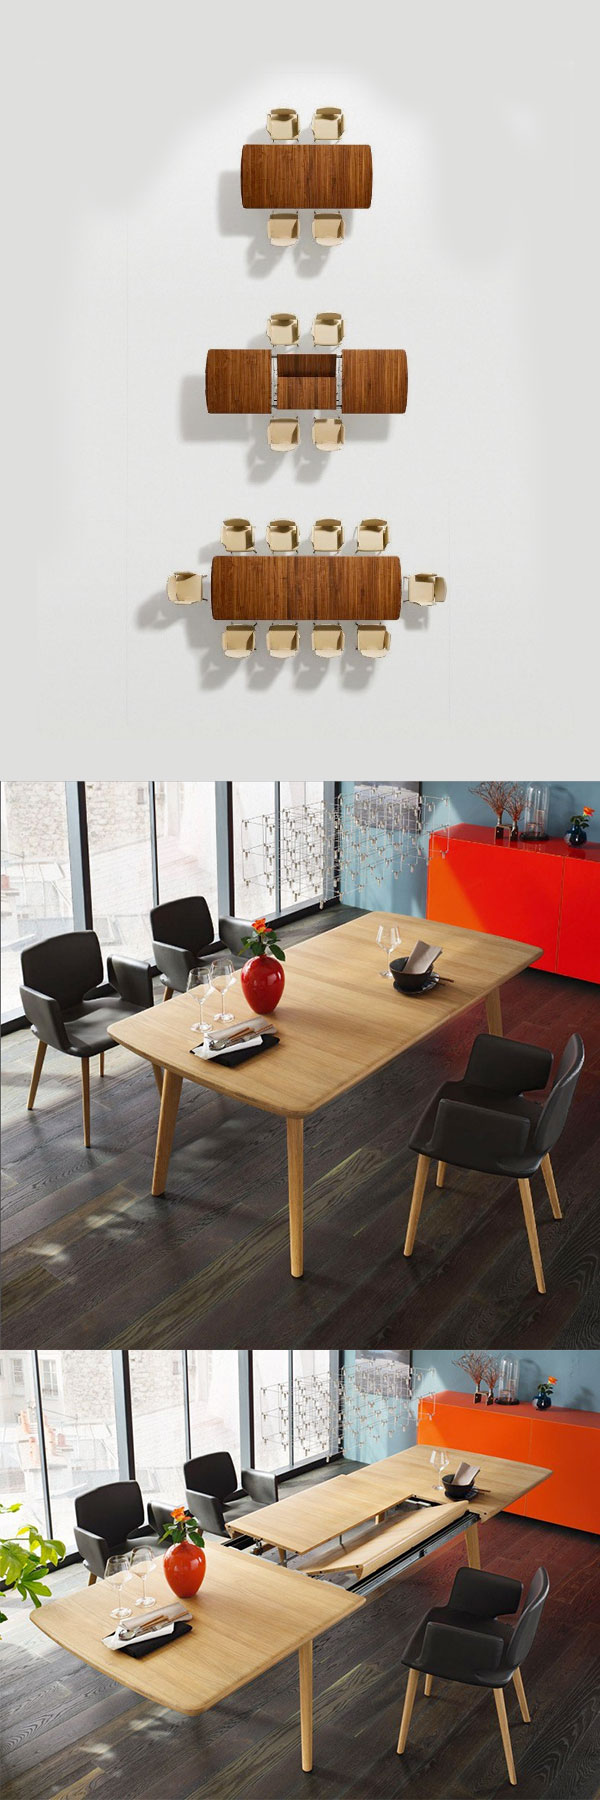 & 30 Extendable Dining Tables